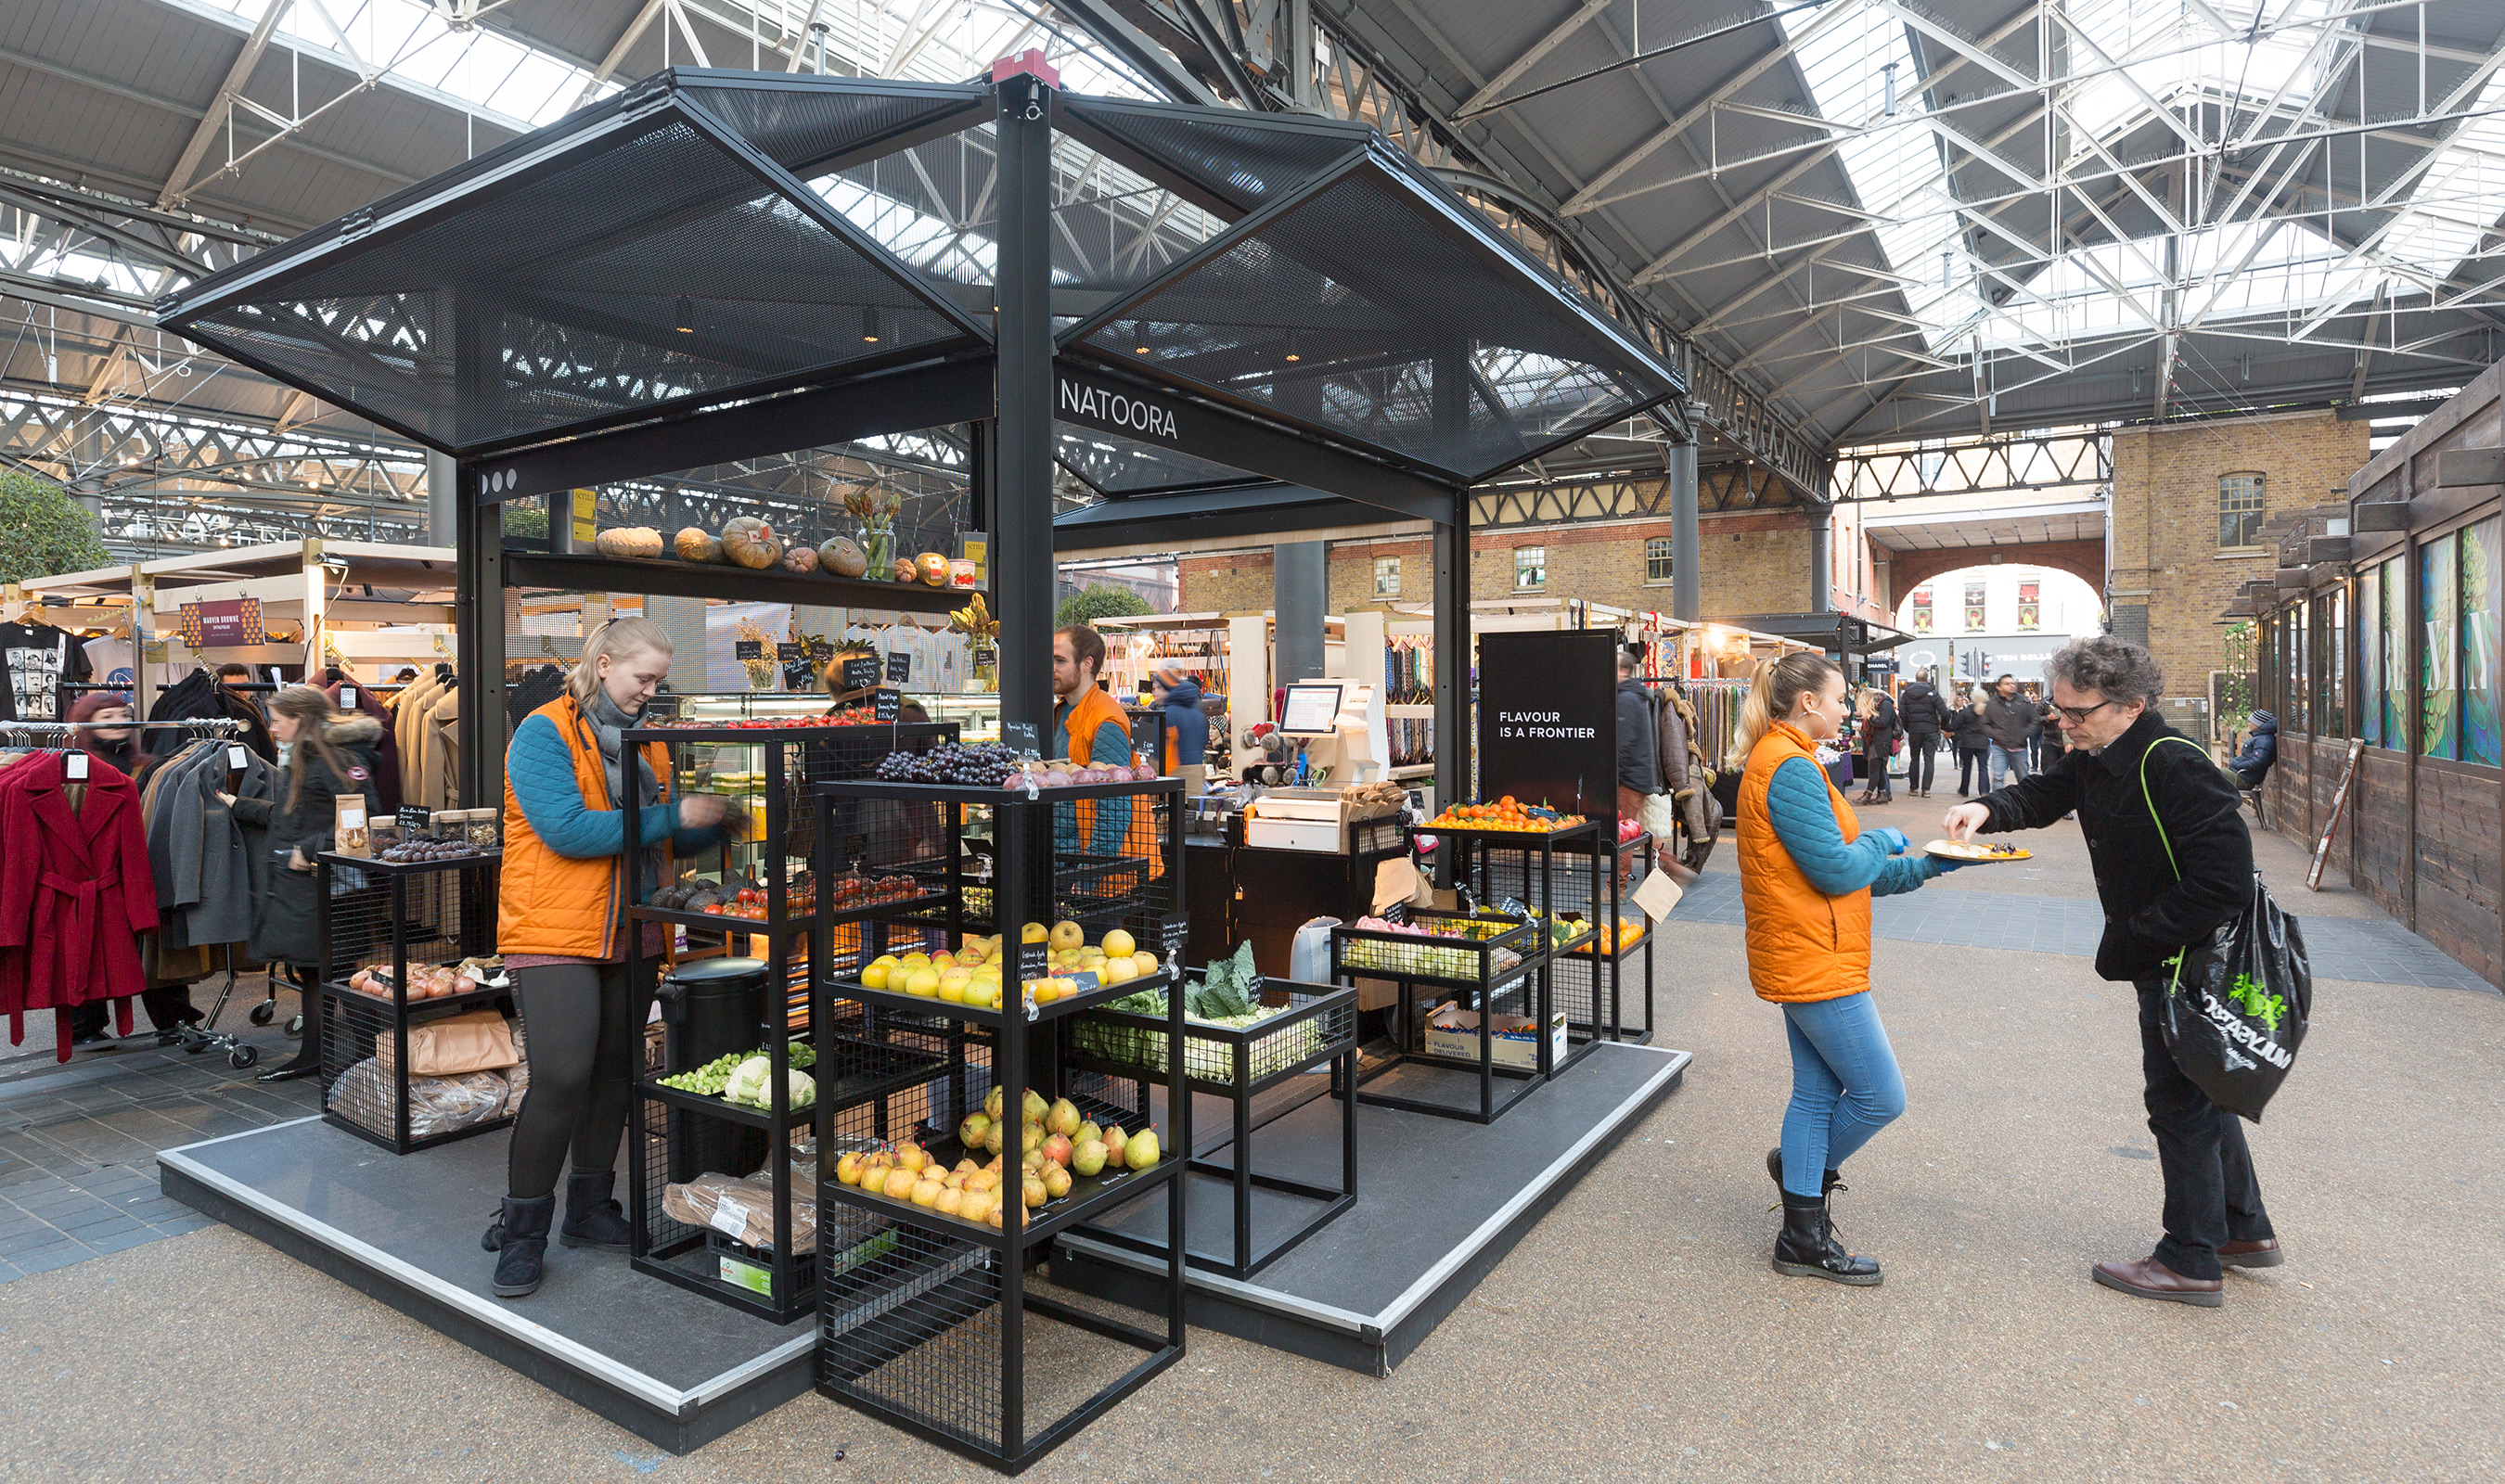 Wire mesh is a beautiful material to use for these market pods in Old Spitalfields Market.